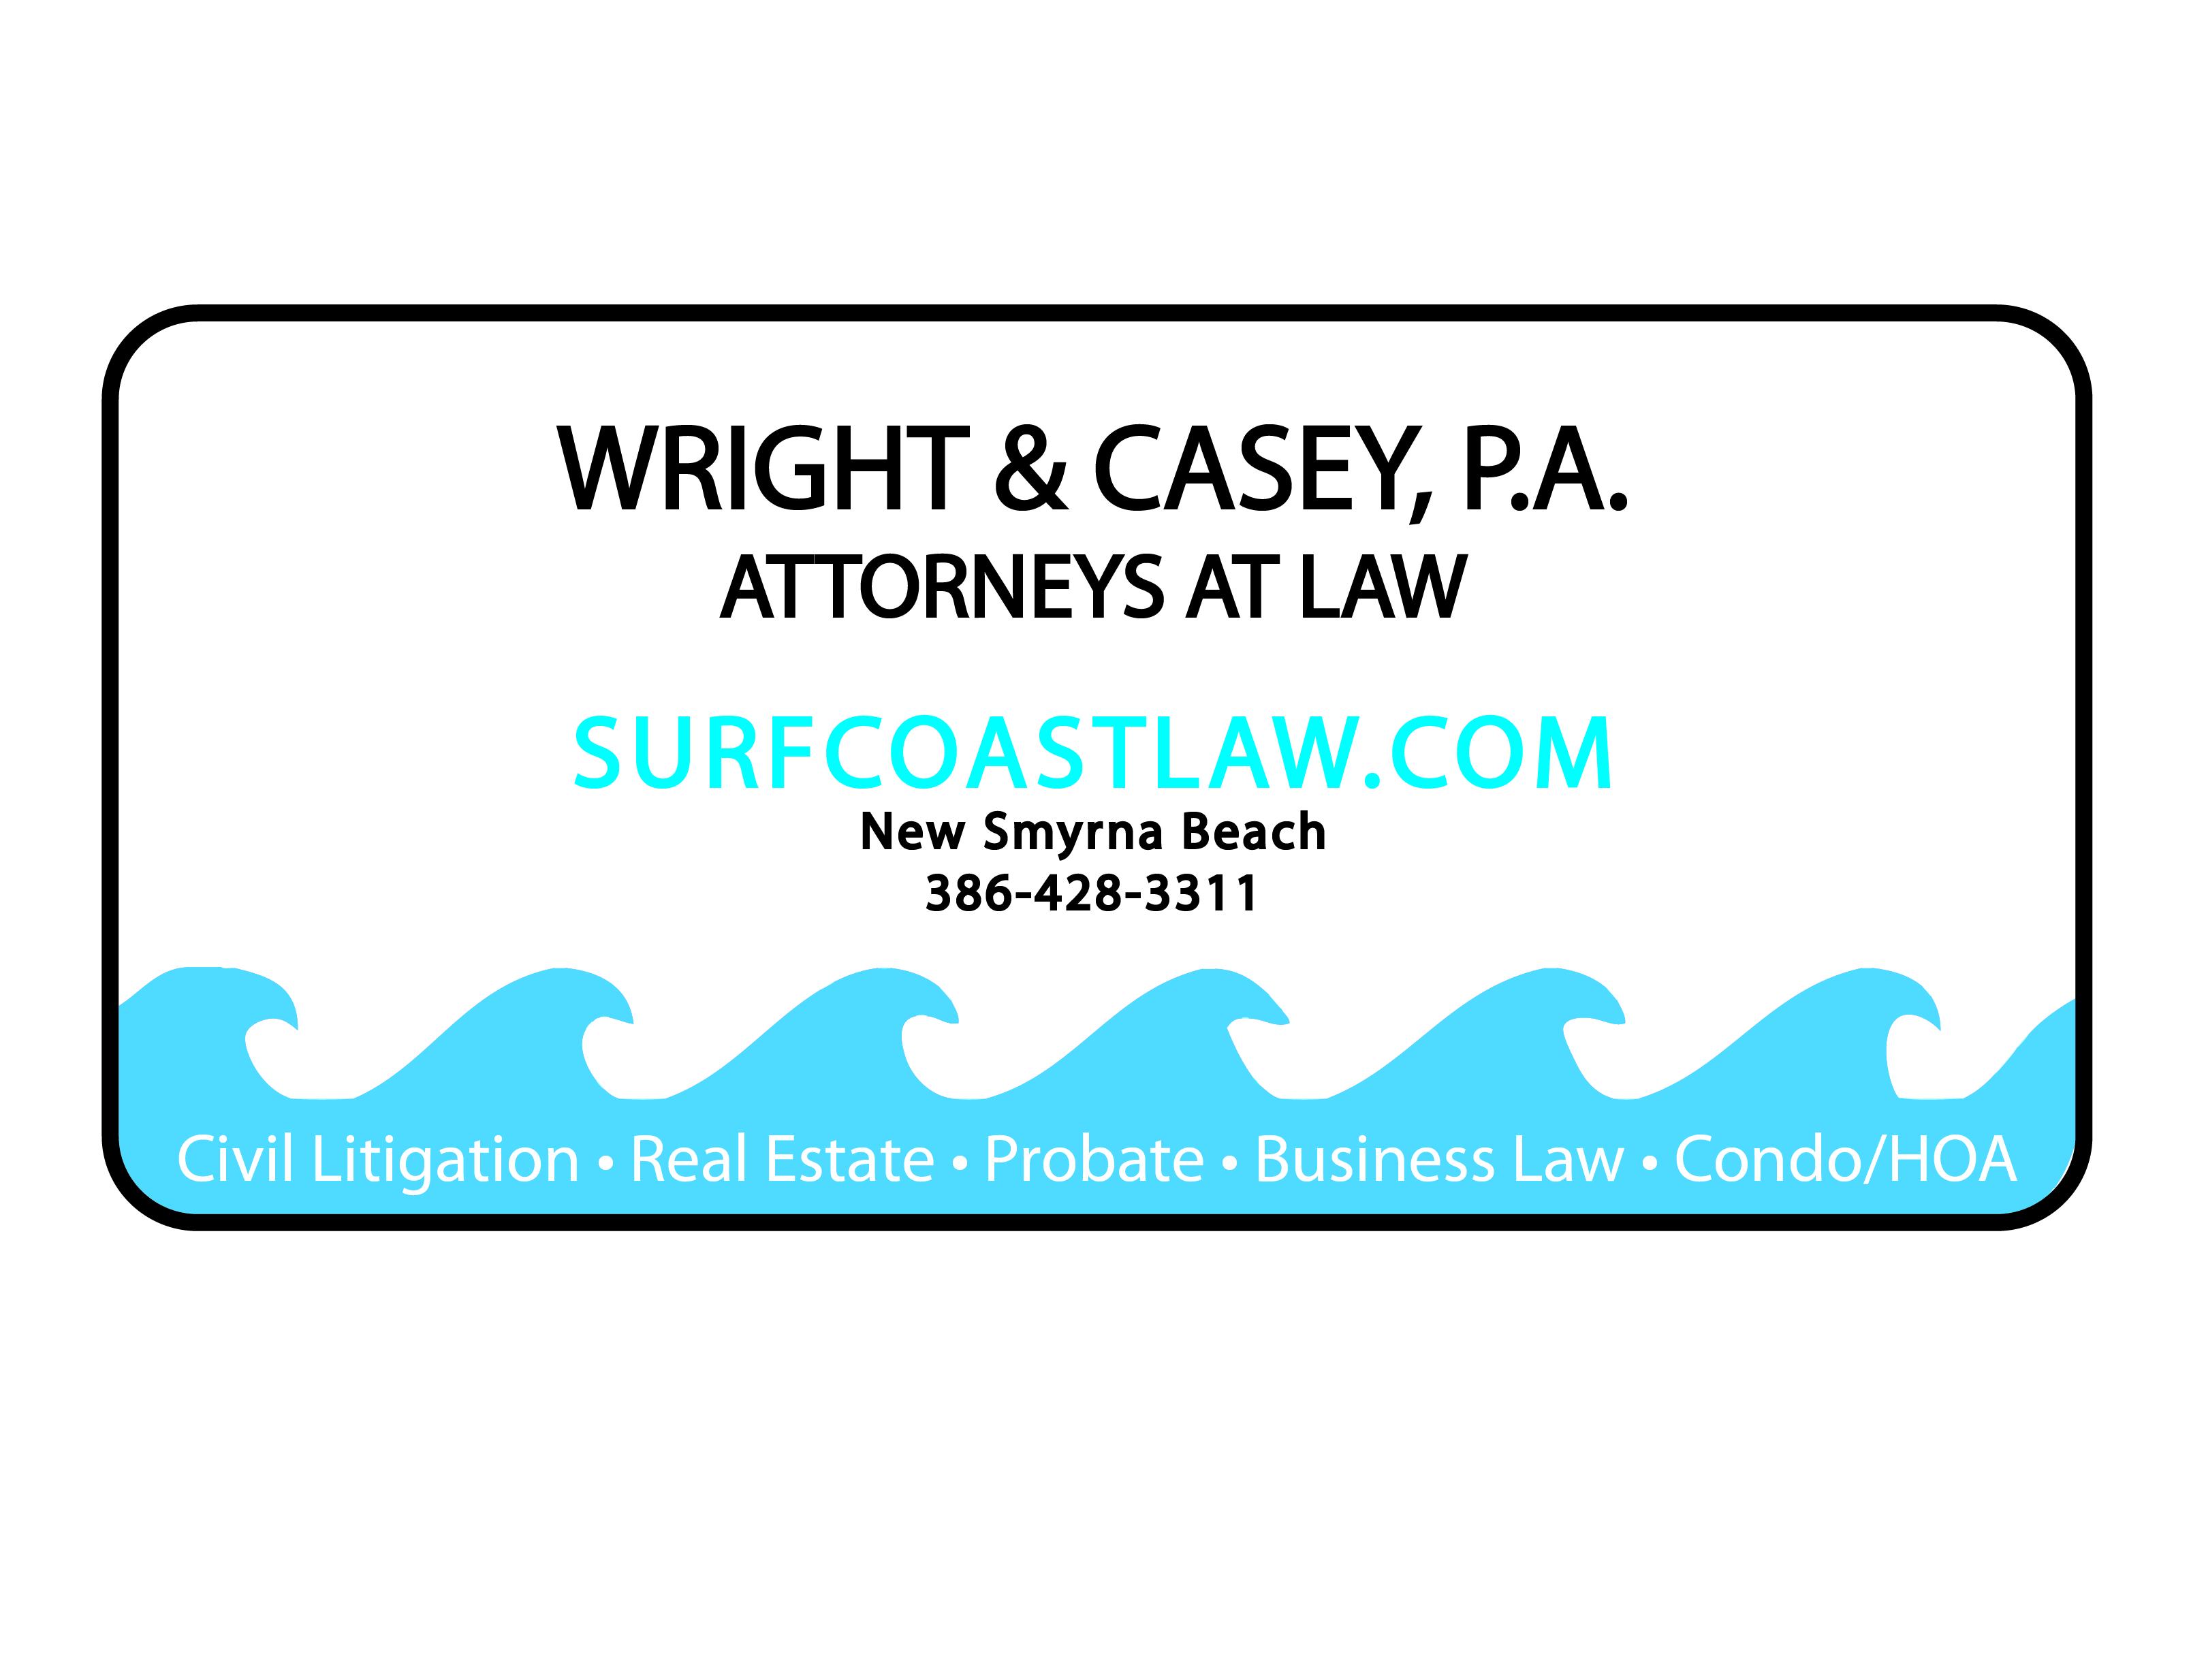 Wright & Casey, P.A., Attorneys